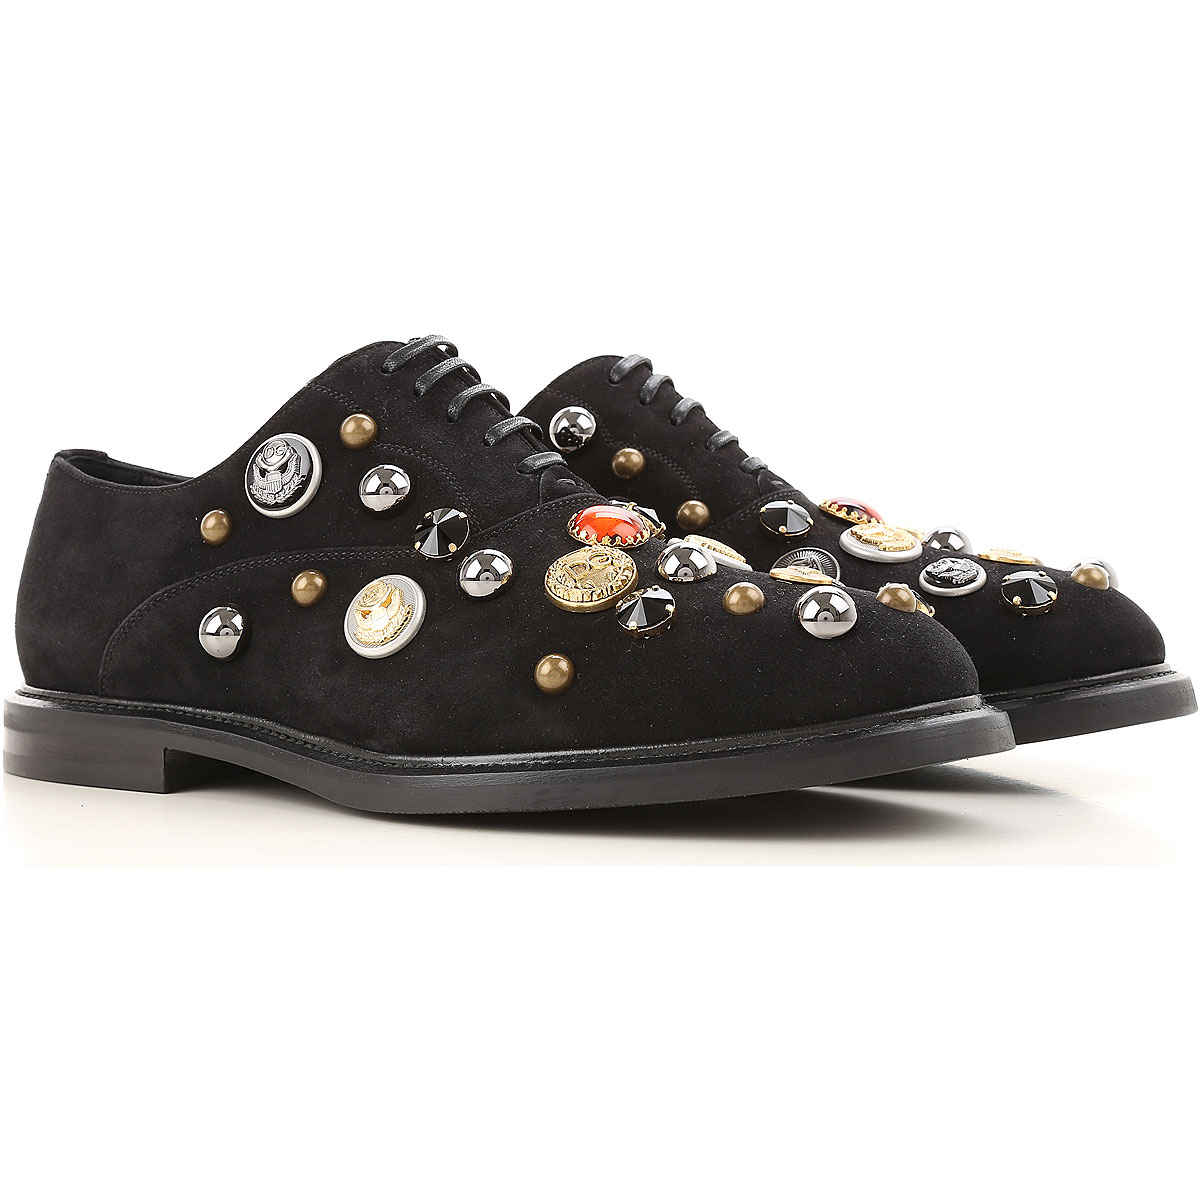 Dolce & Gabbana Brogue Shoes On Sale in Outlet, Black, Suede leather, 2017, 10.25 8.5